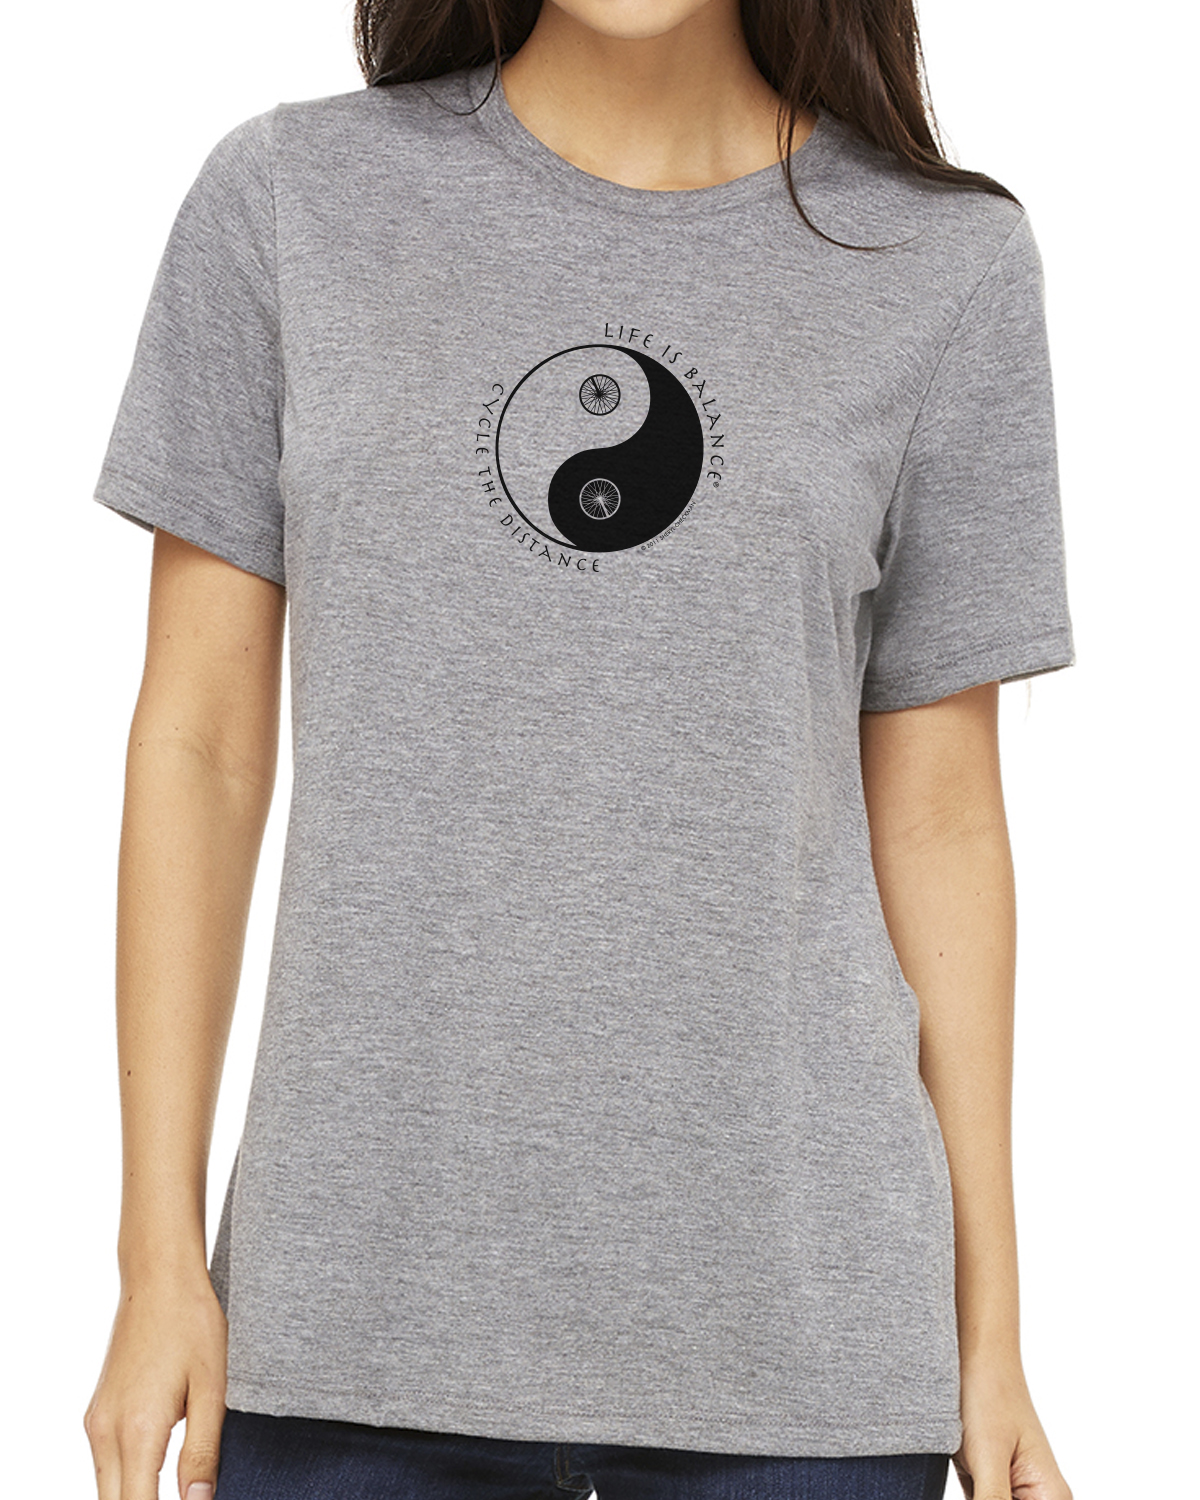 Women's short sleeve biking or cycling t-shirt (heather gray)